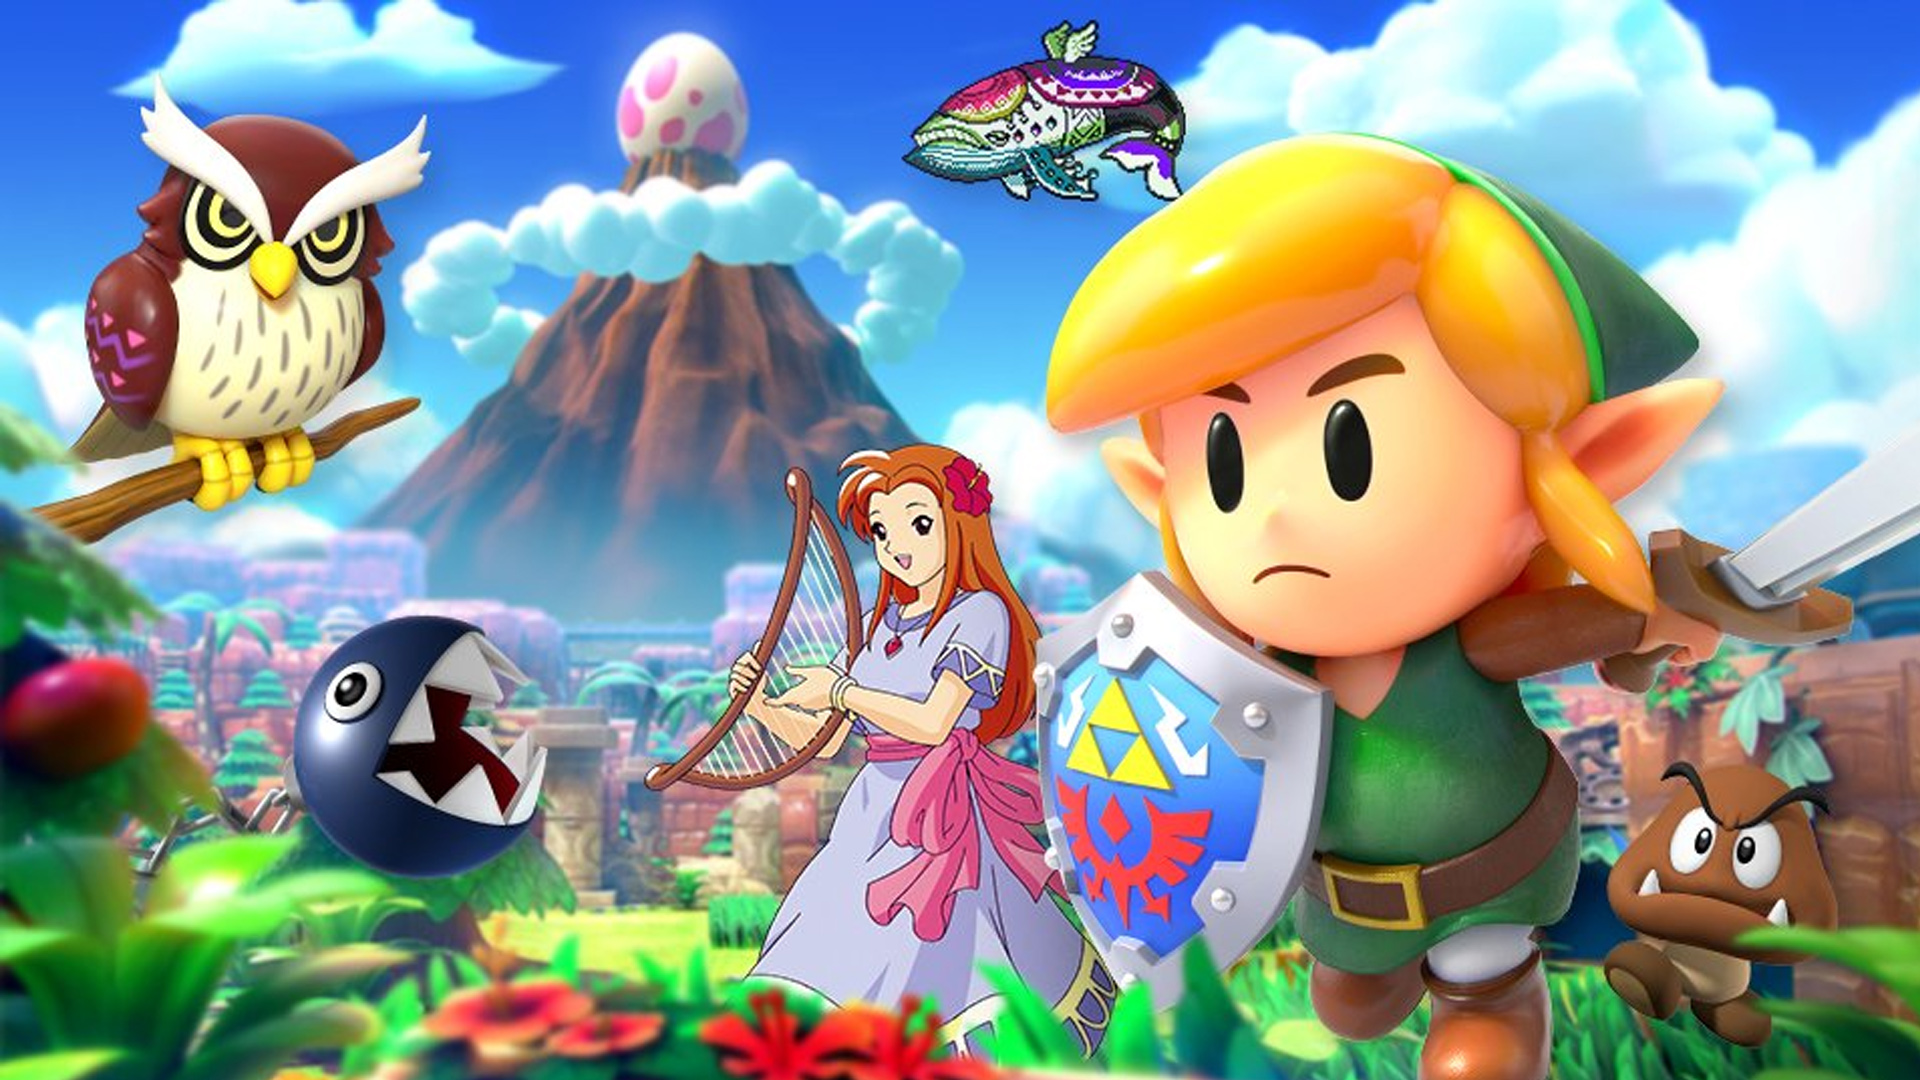 The Legend Of Zelda Link S Awakening Is A Faithful Remake Capable Of Exceeding The Original In Every Way Godisageek Com